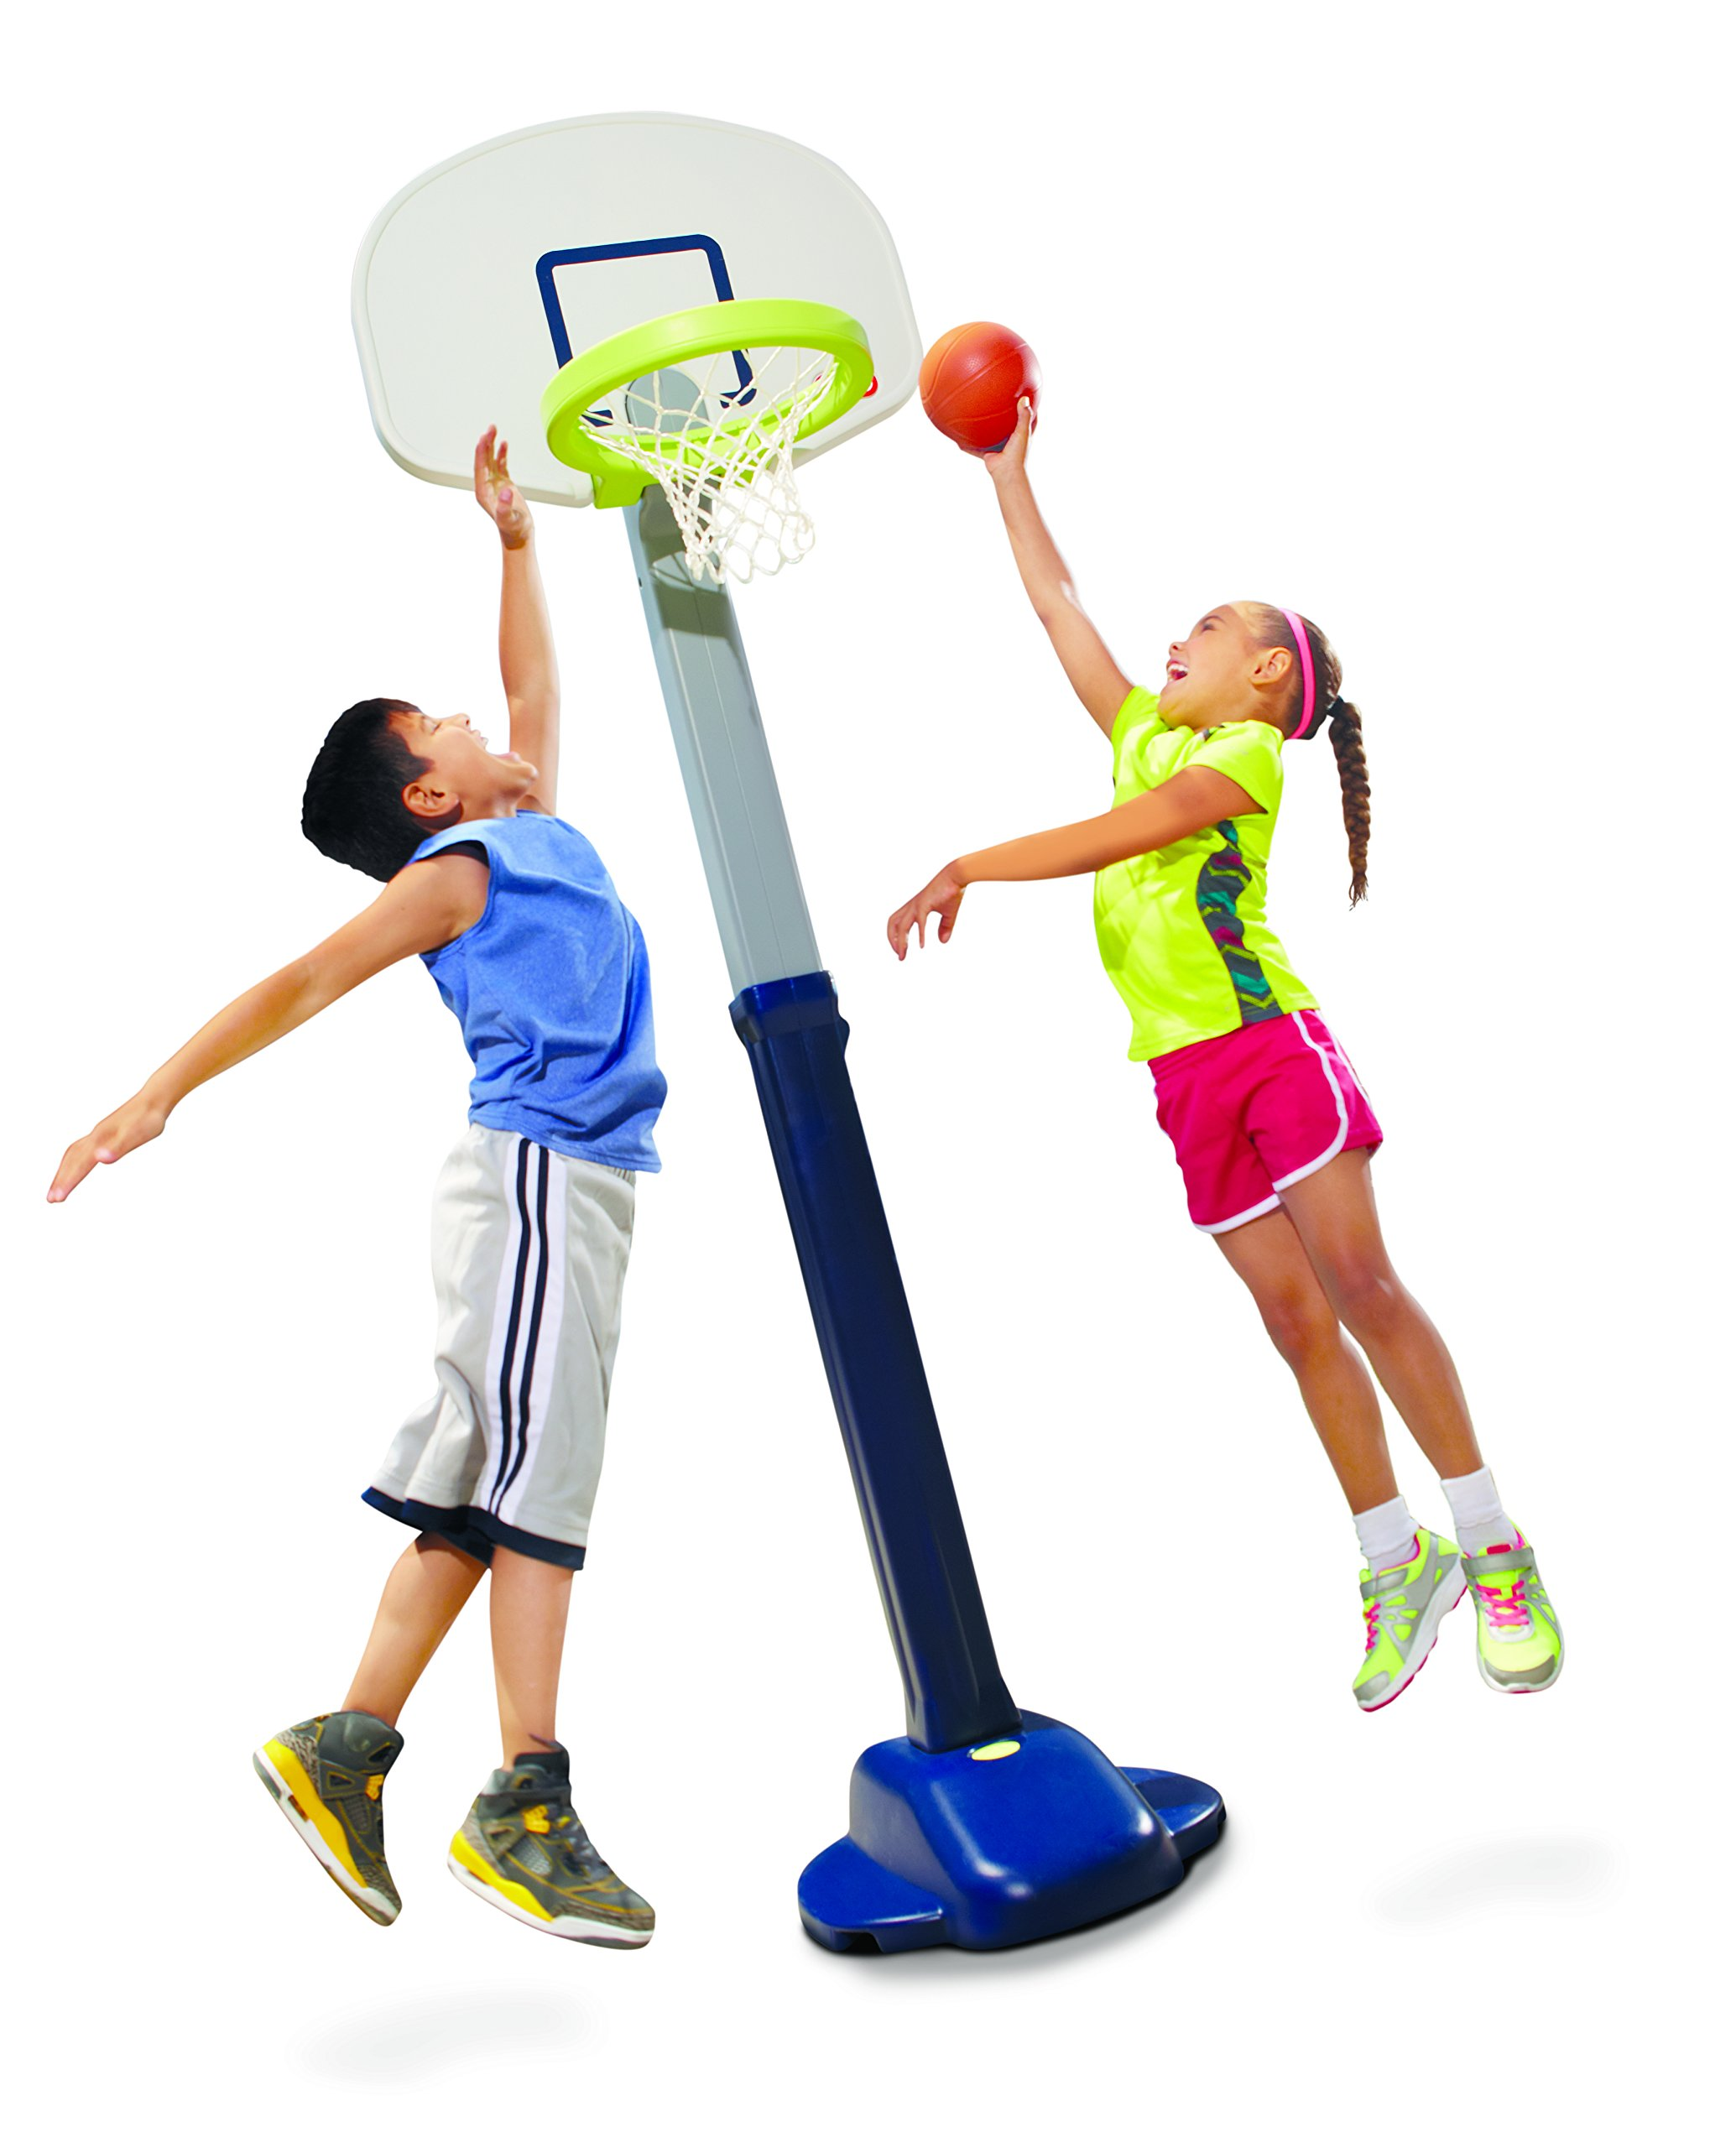 Little Tikes Adjust and Jam Pro Basketball Set, Blue by Little Tikes